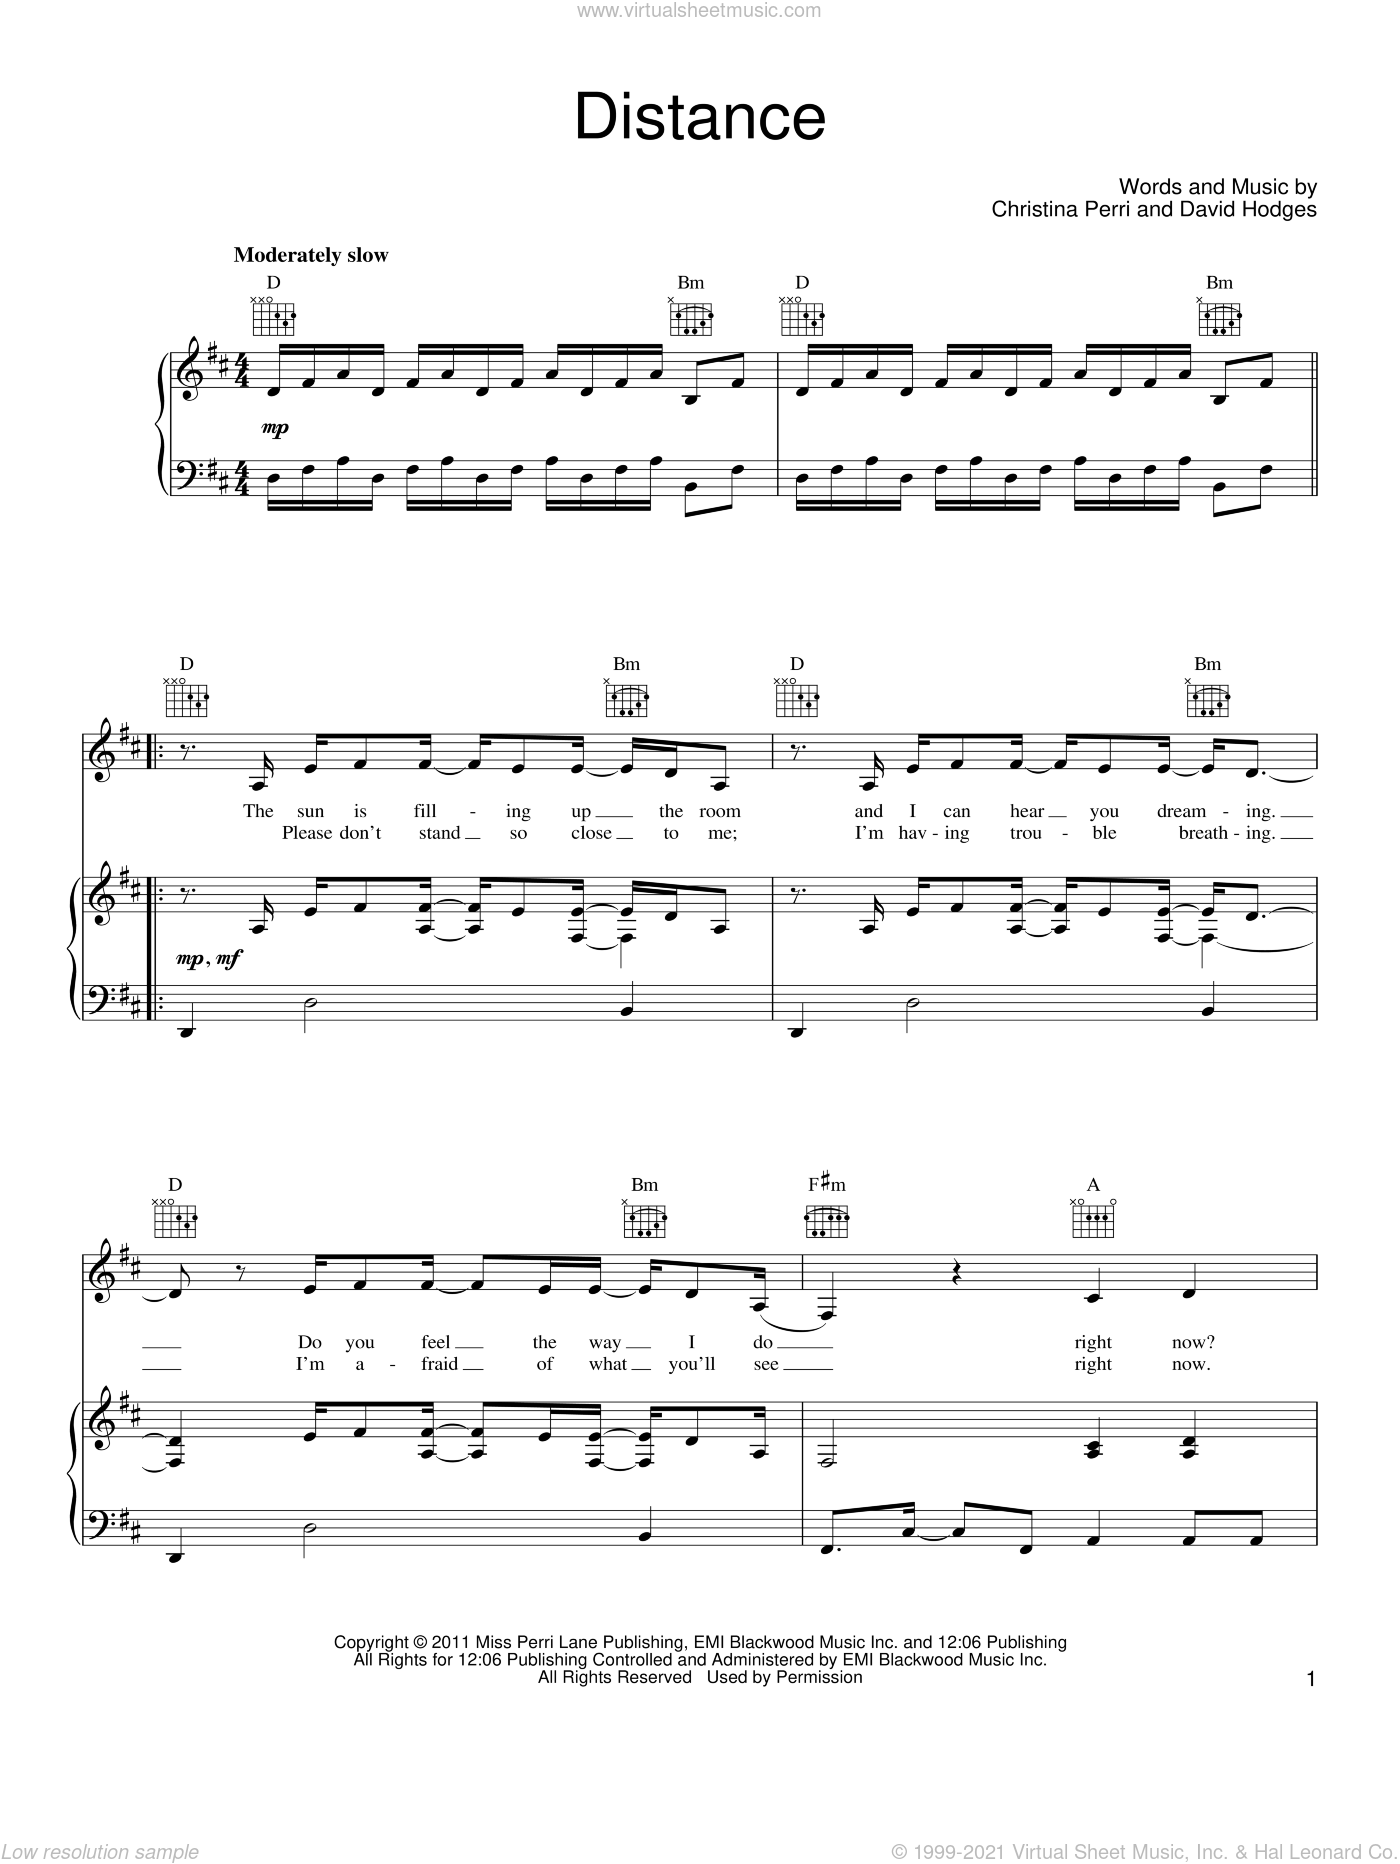 Distance sheet music for voice, piano or guitar by David Hodges and Christina Perri. Score Image Preview.